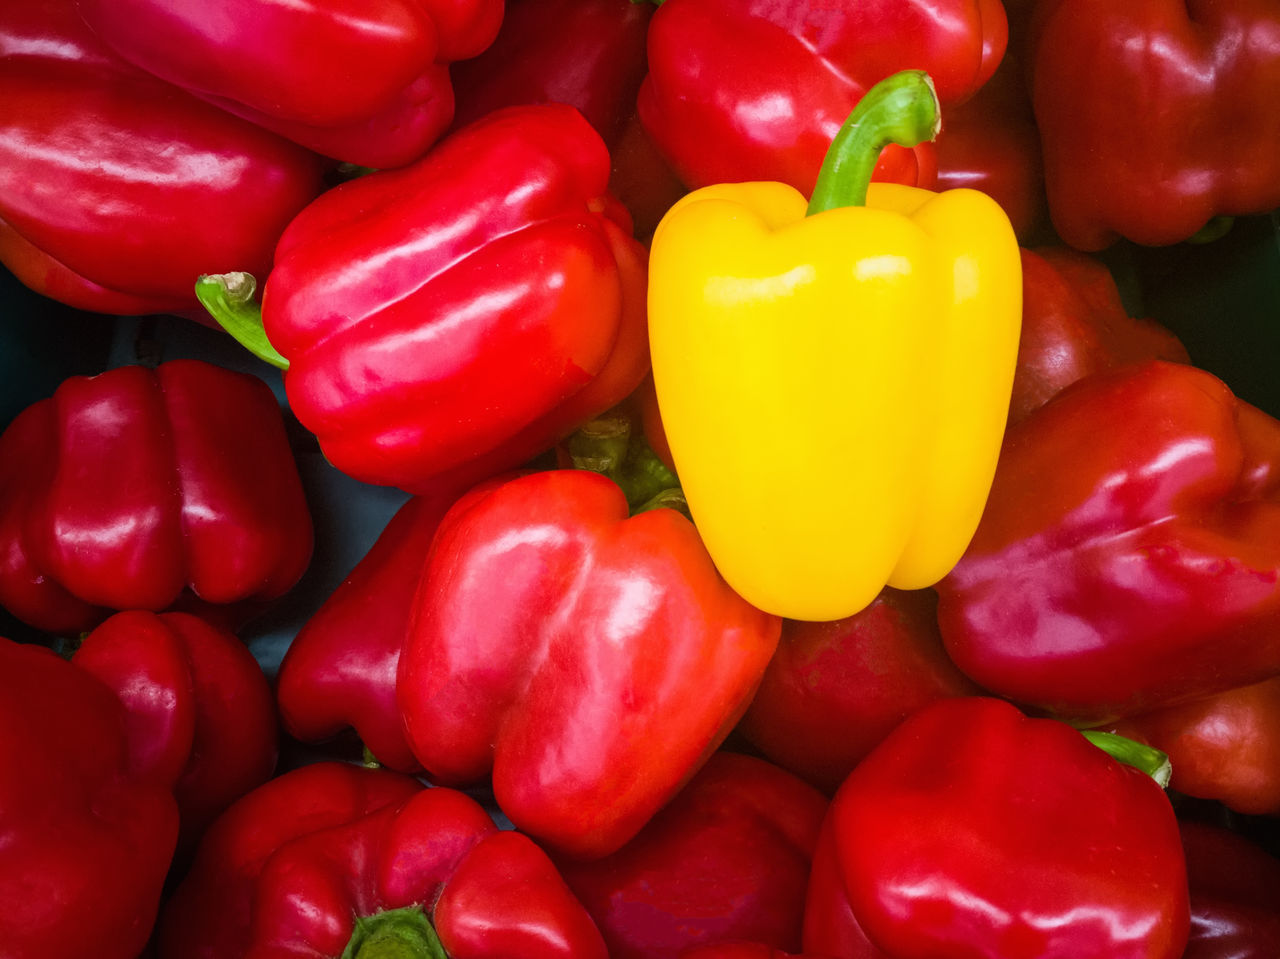 pepper bell Red Healthy Eating Food And Drink Freshness Vegetable Full Frame No People Food Directly Above Close-up Red Bell Pepper Backgrounds Studio Shot Indoors  Day yellow Sweets Vegetables Salad Bar Meal Vegetables Photo Vegetables & Fruits